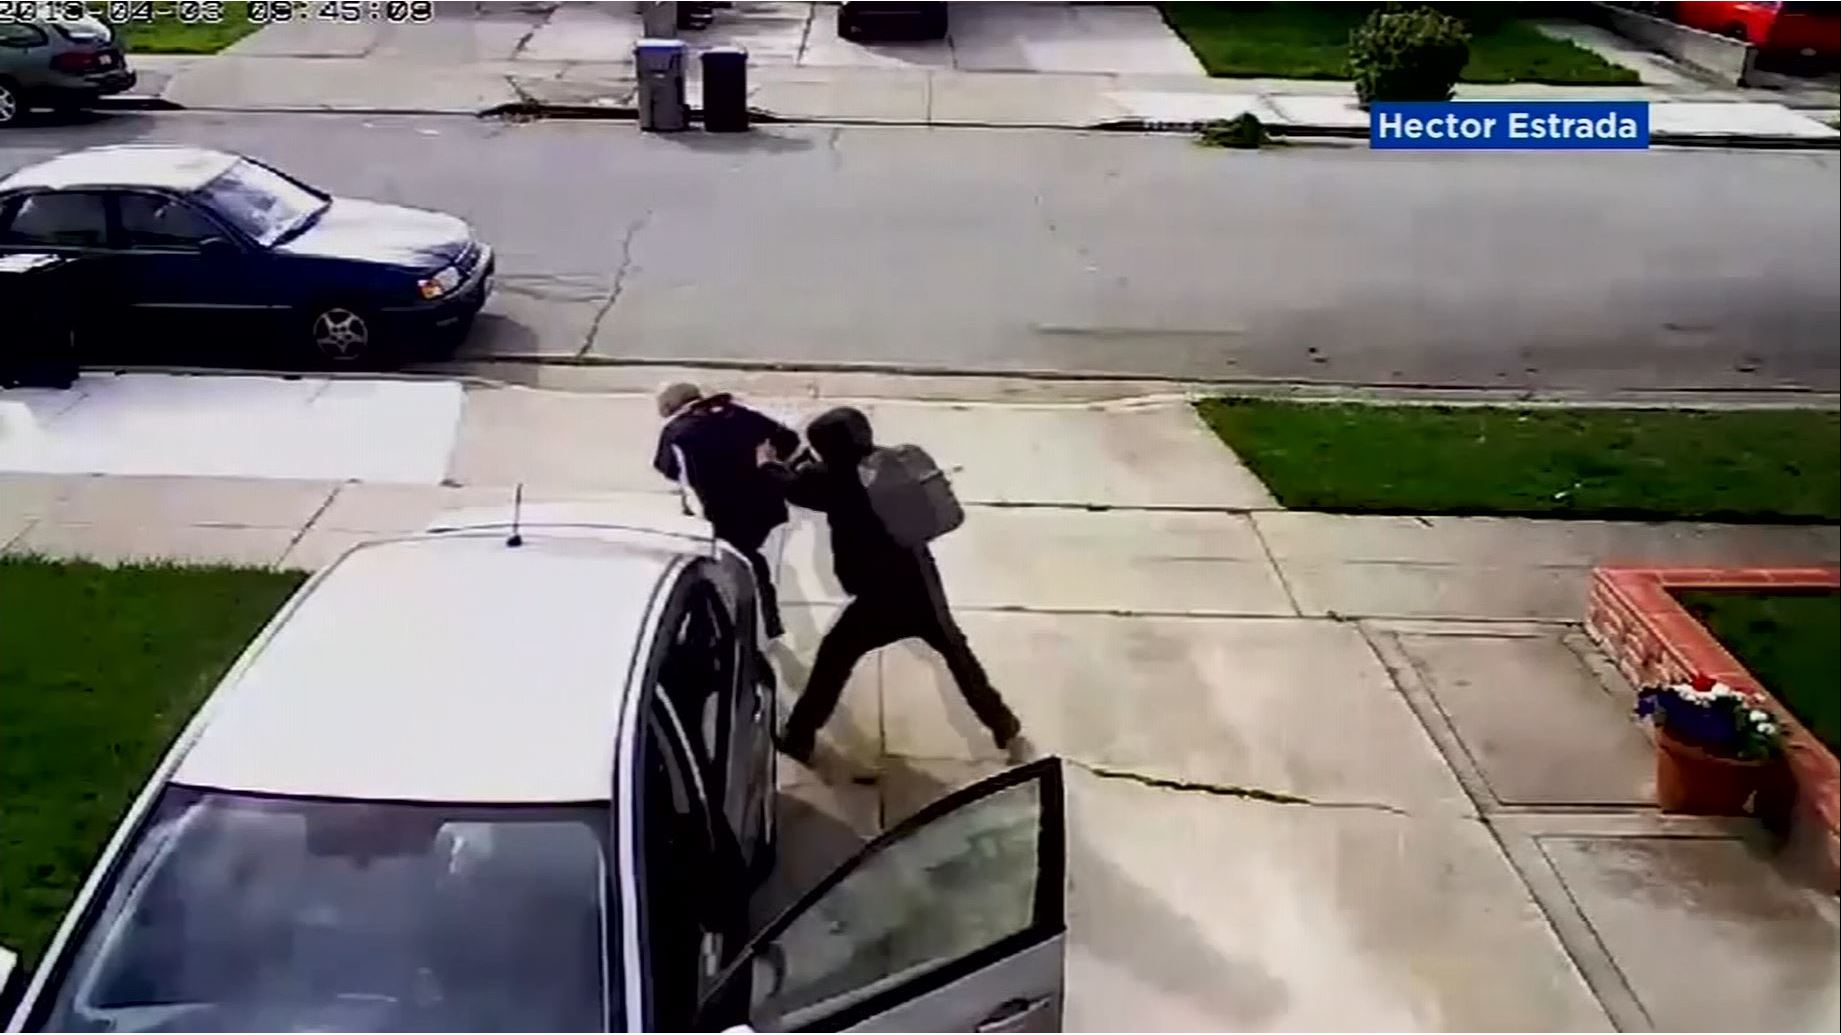 14 Year Old Arrested In Carjacking Beating Of 72 Year Old Man